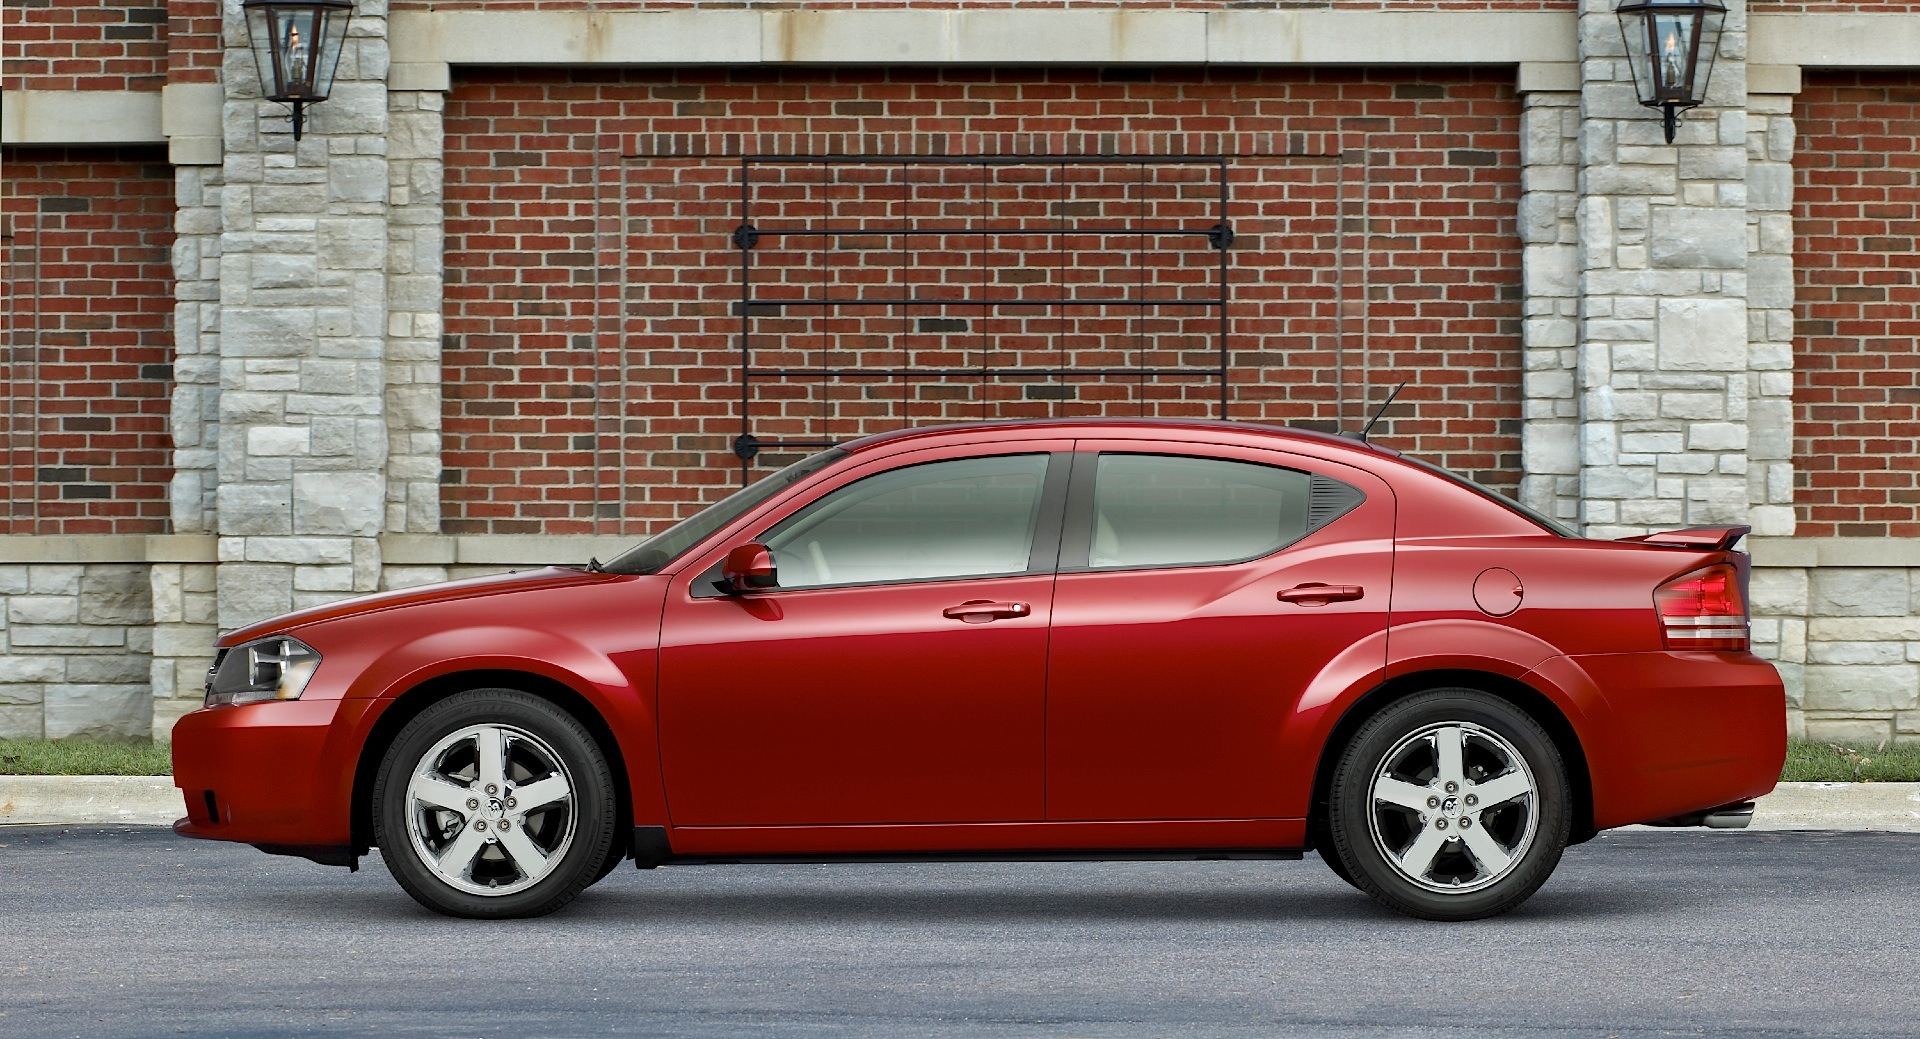 Dodge Prices 2013 Dart Sedan From 16790 Top Spec Rt Model From 23290 further 2013 Toyota Camry New Car Review likewise Rumor For 2018 Dodge Avenger Release Date together with 2007 Cls 350 cgi moreover Dodge Challenger Radio Wiring Harness. on dodge avenger audio system